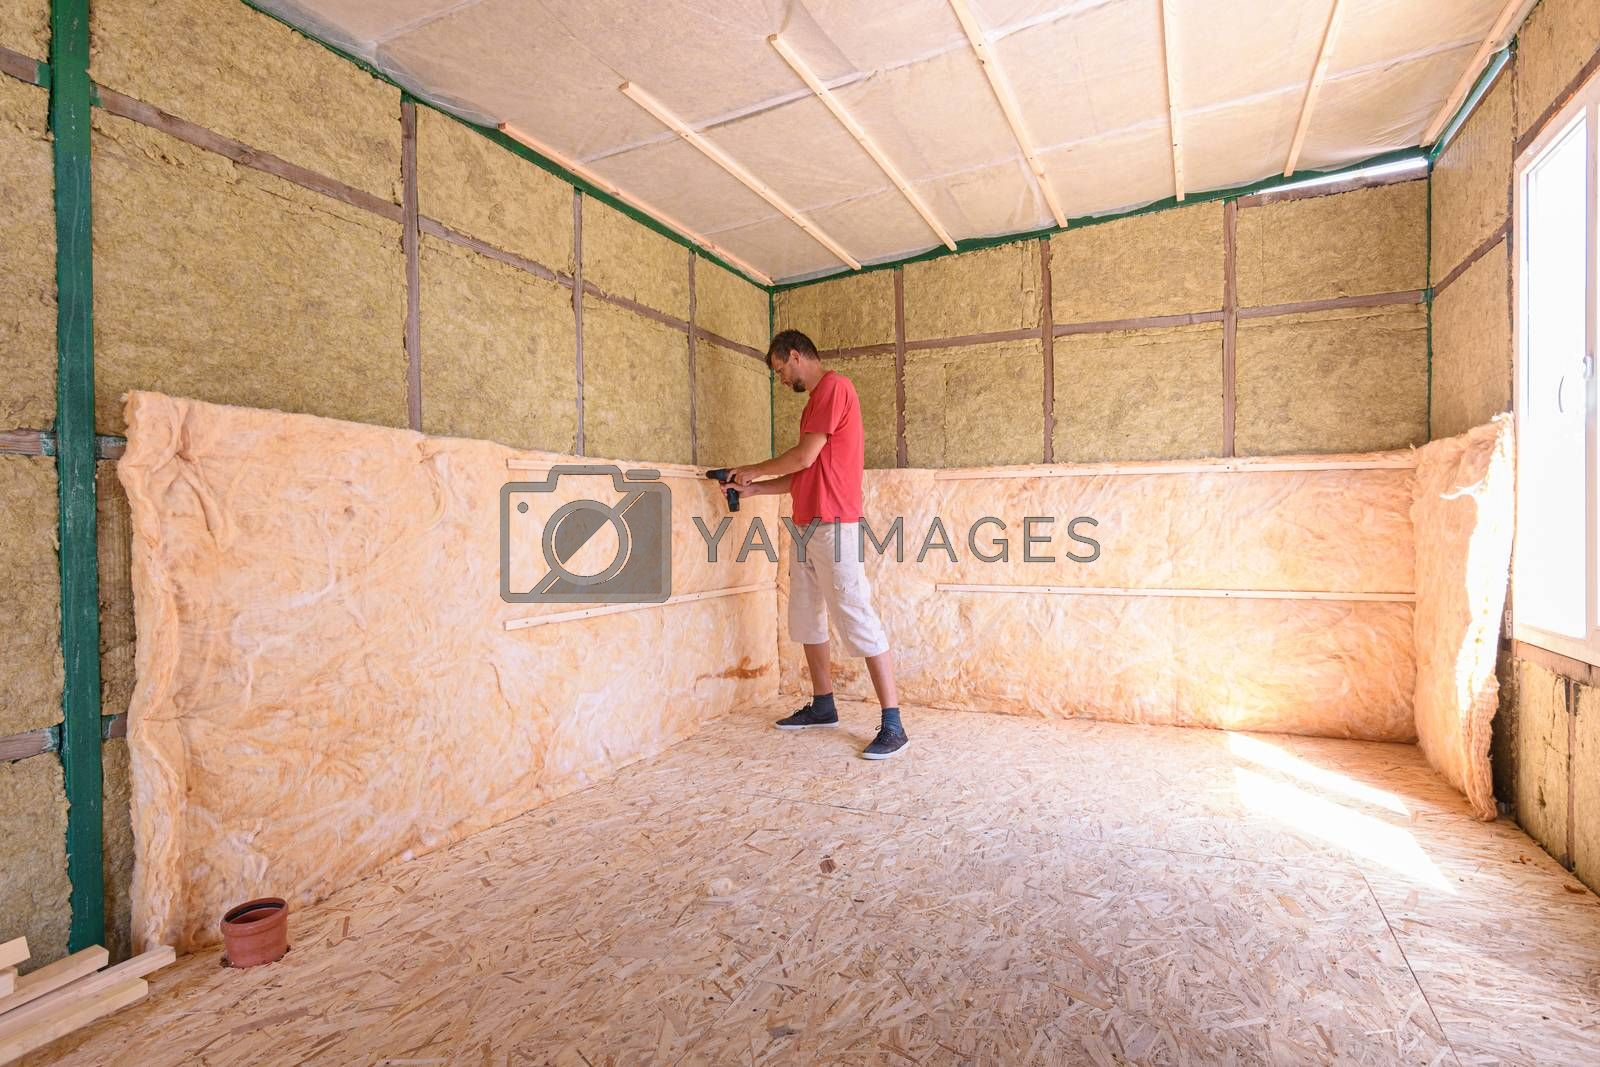 A worker is installing a roll of insulation in the construction of a country house